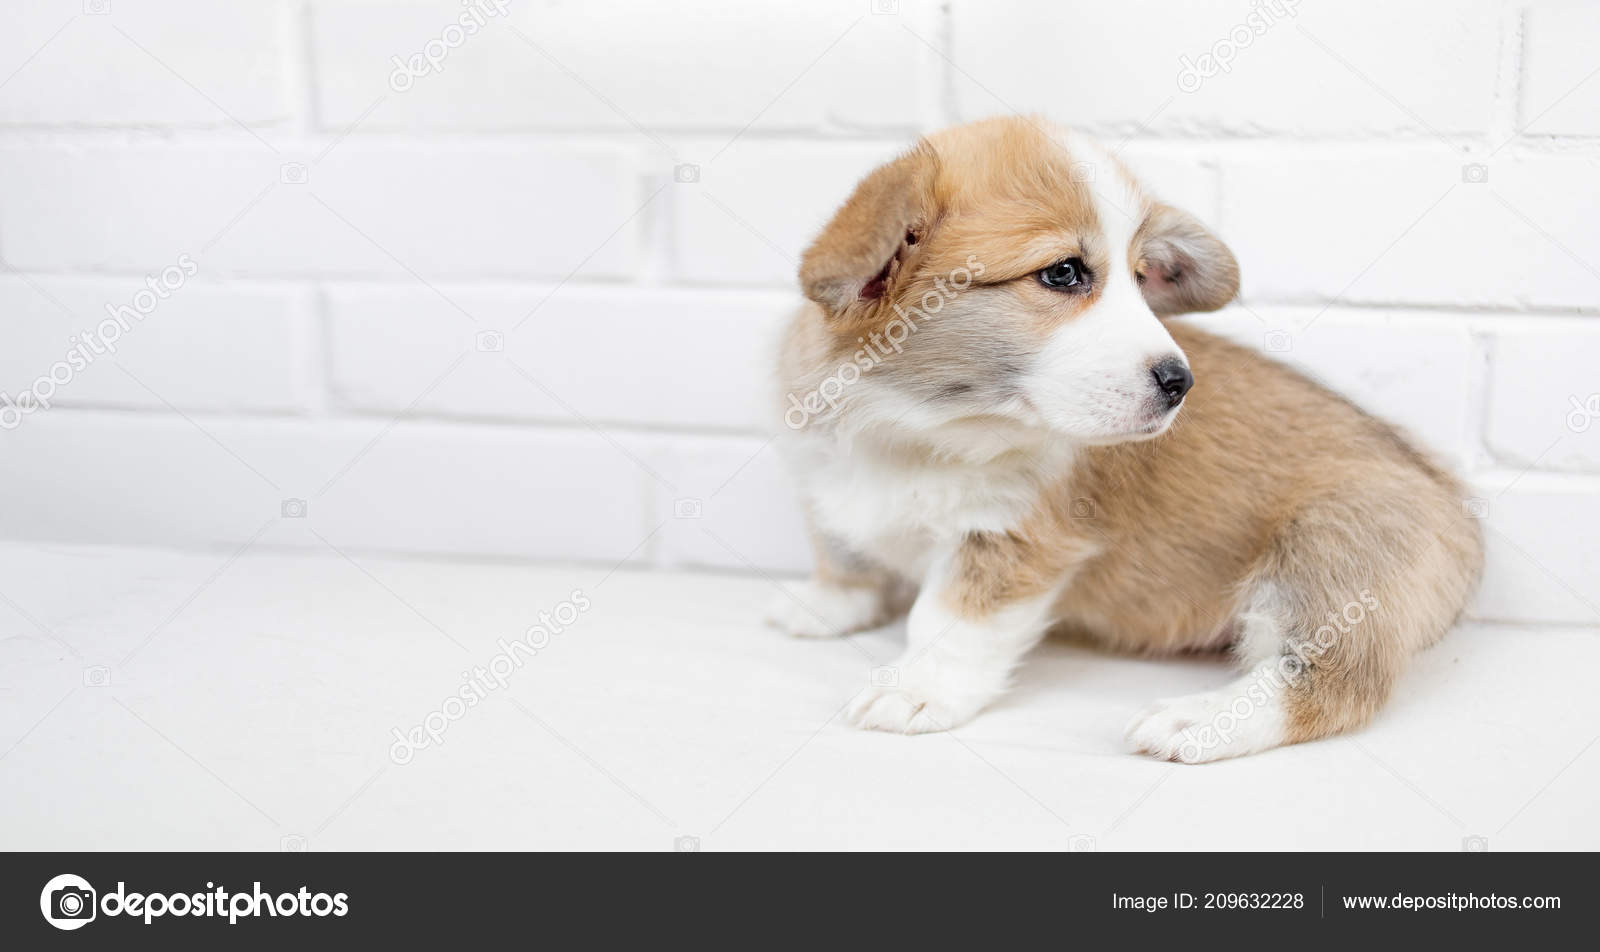 Pictures Small Fluffy White Puppies Small Cute Puppy Dog Looking Studio Shot Adorable Fluffy Puppy Stock Photo C Zakharova 209632228